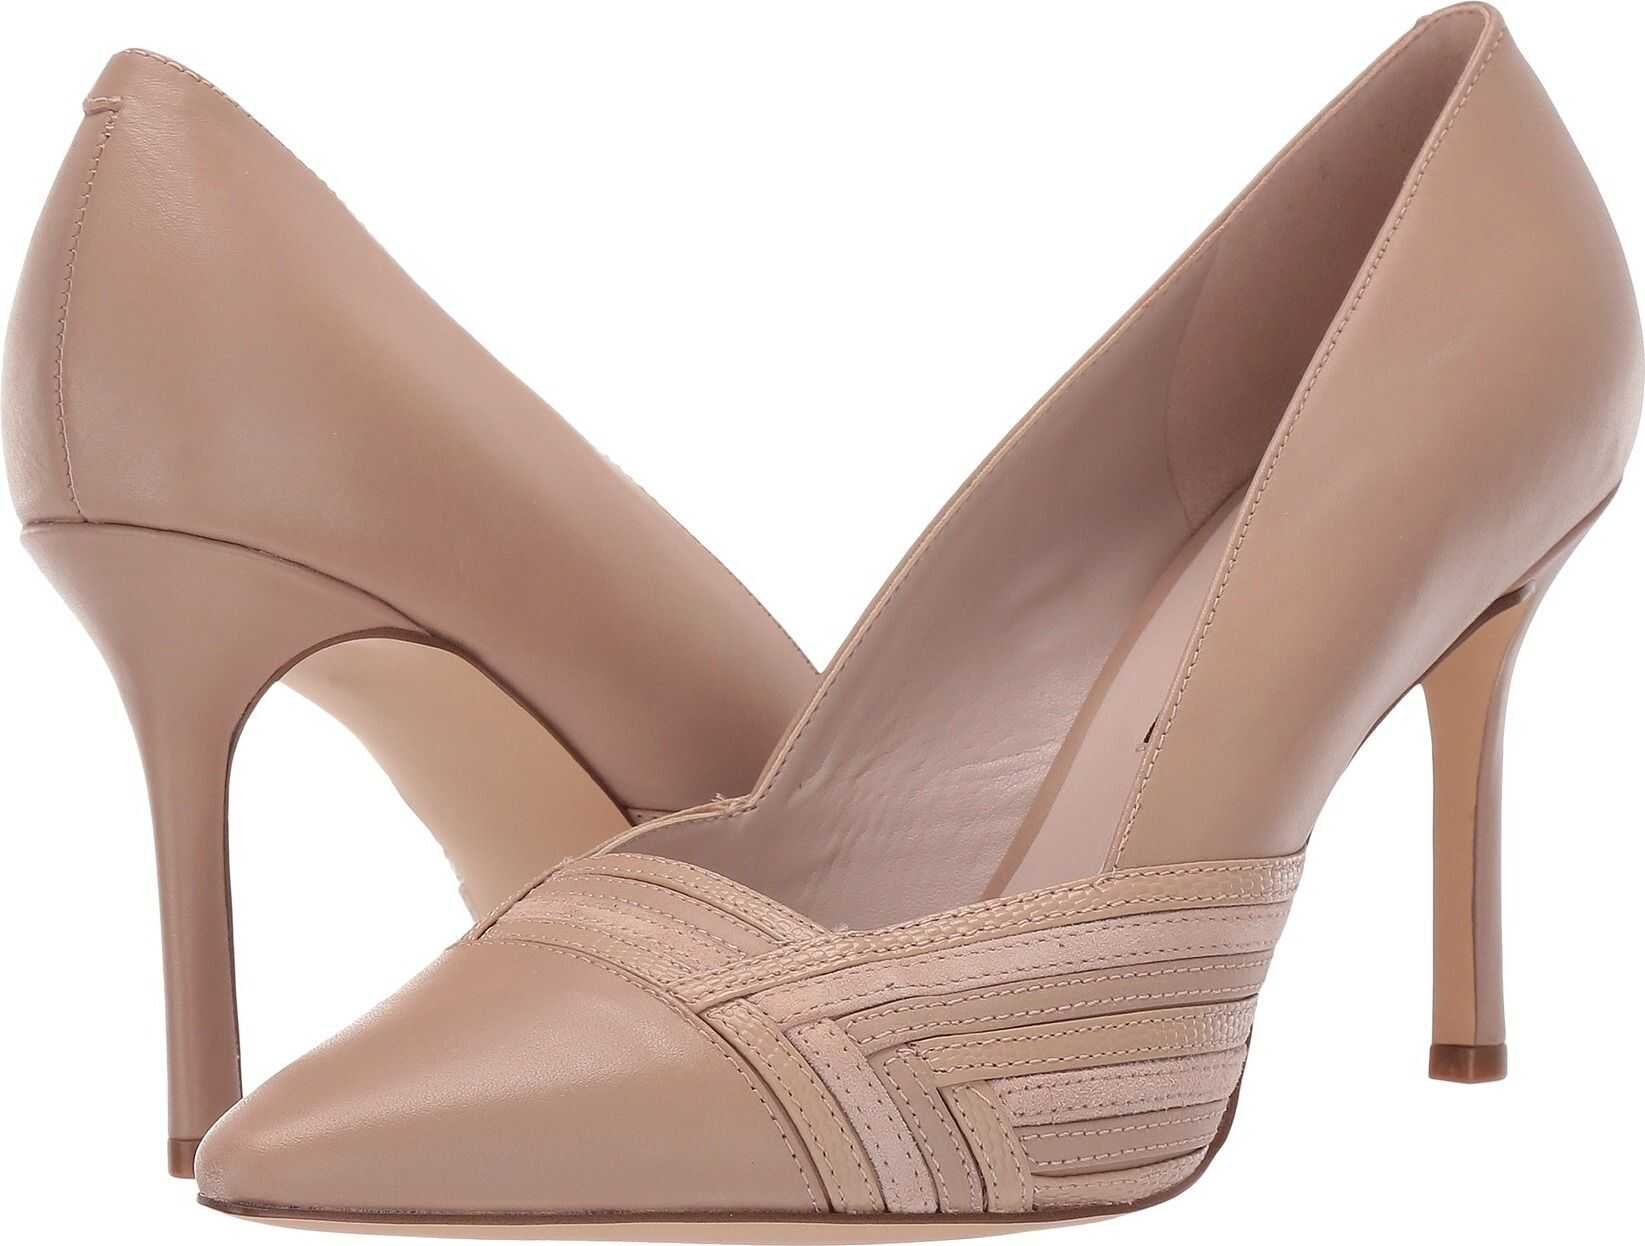 Nine West Eugene Pump Barely Nude/Barely Nude/Barely Nude